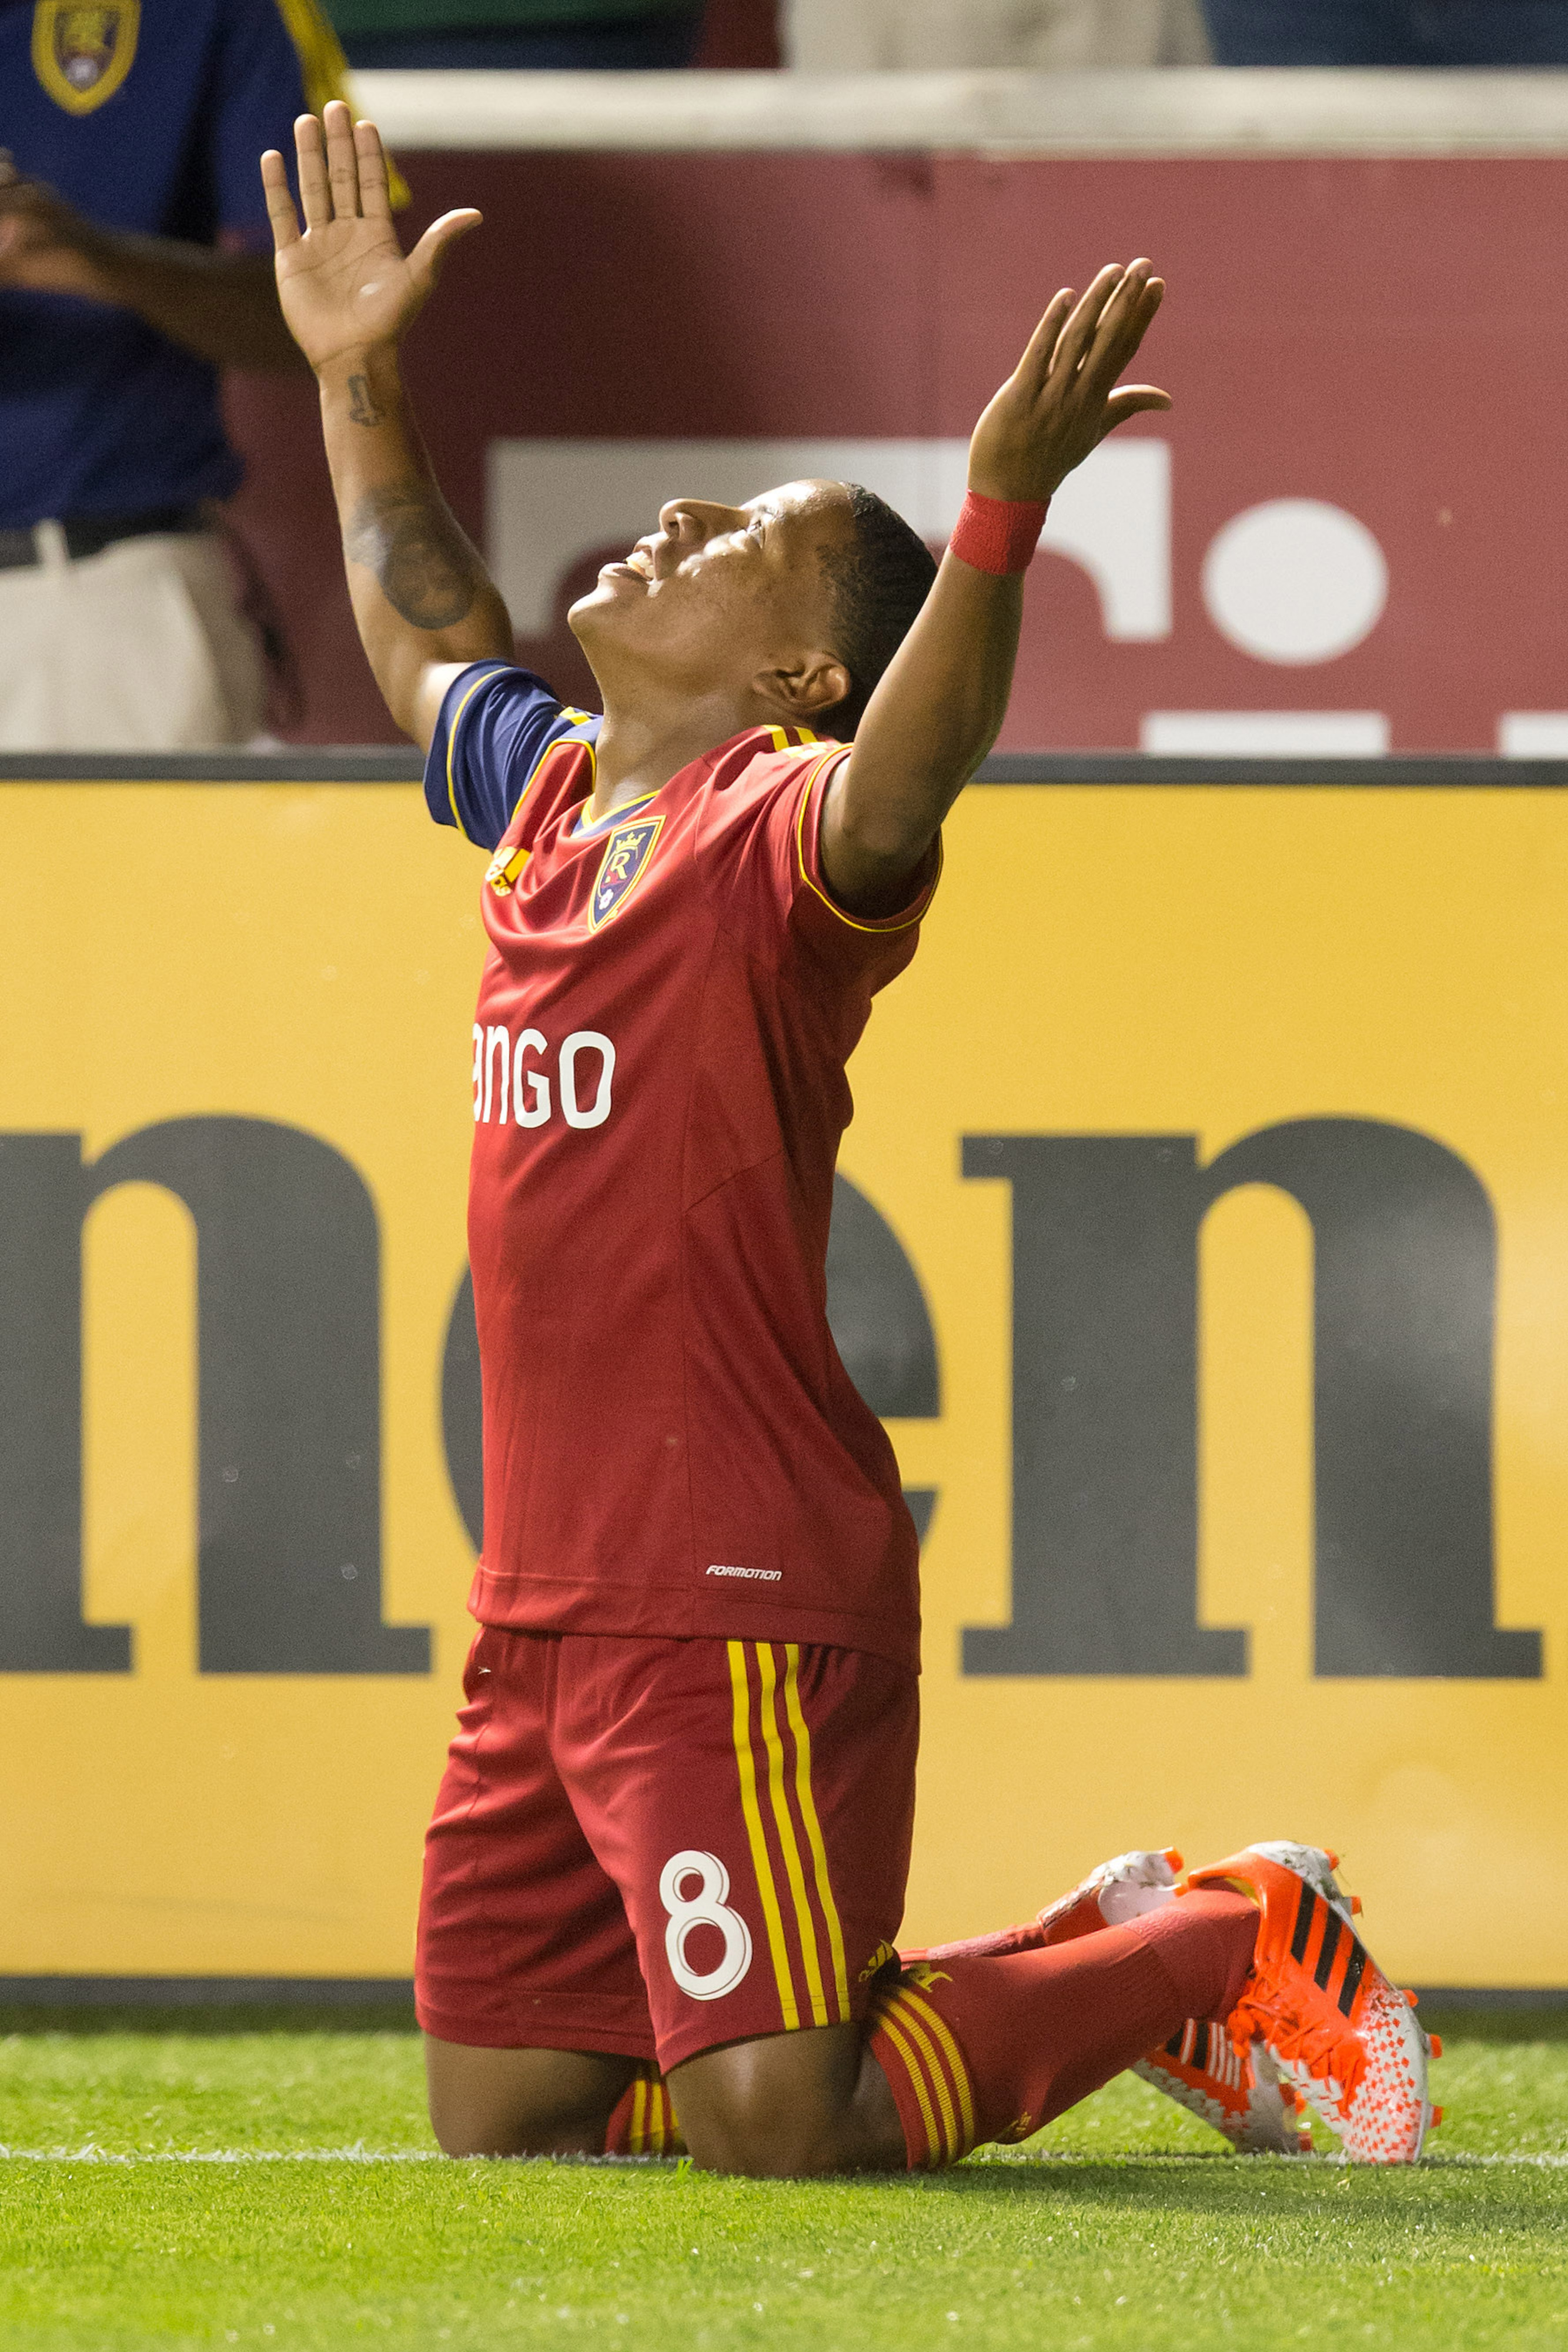 Let's hope D.C. United can find the next Joao Plata this afternoon.